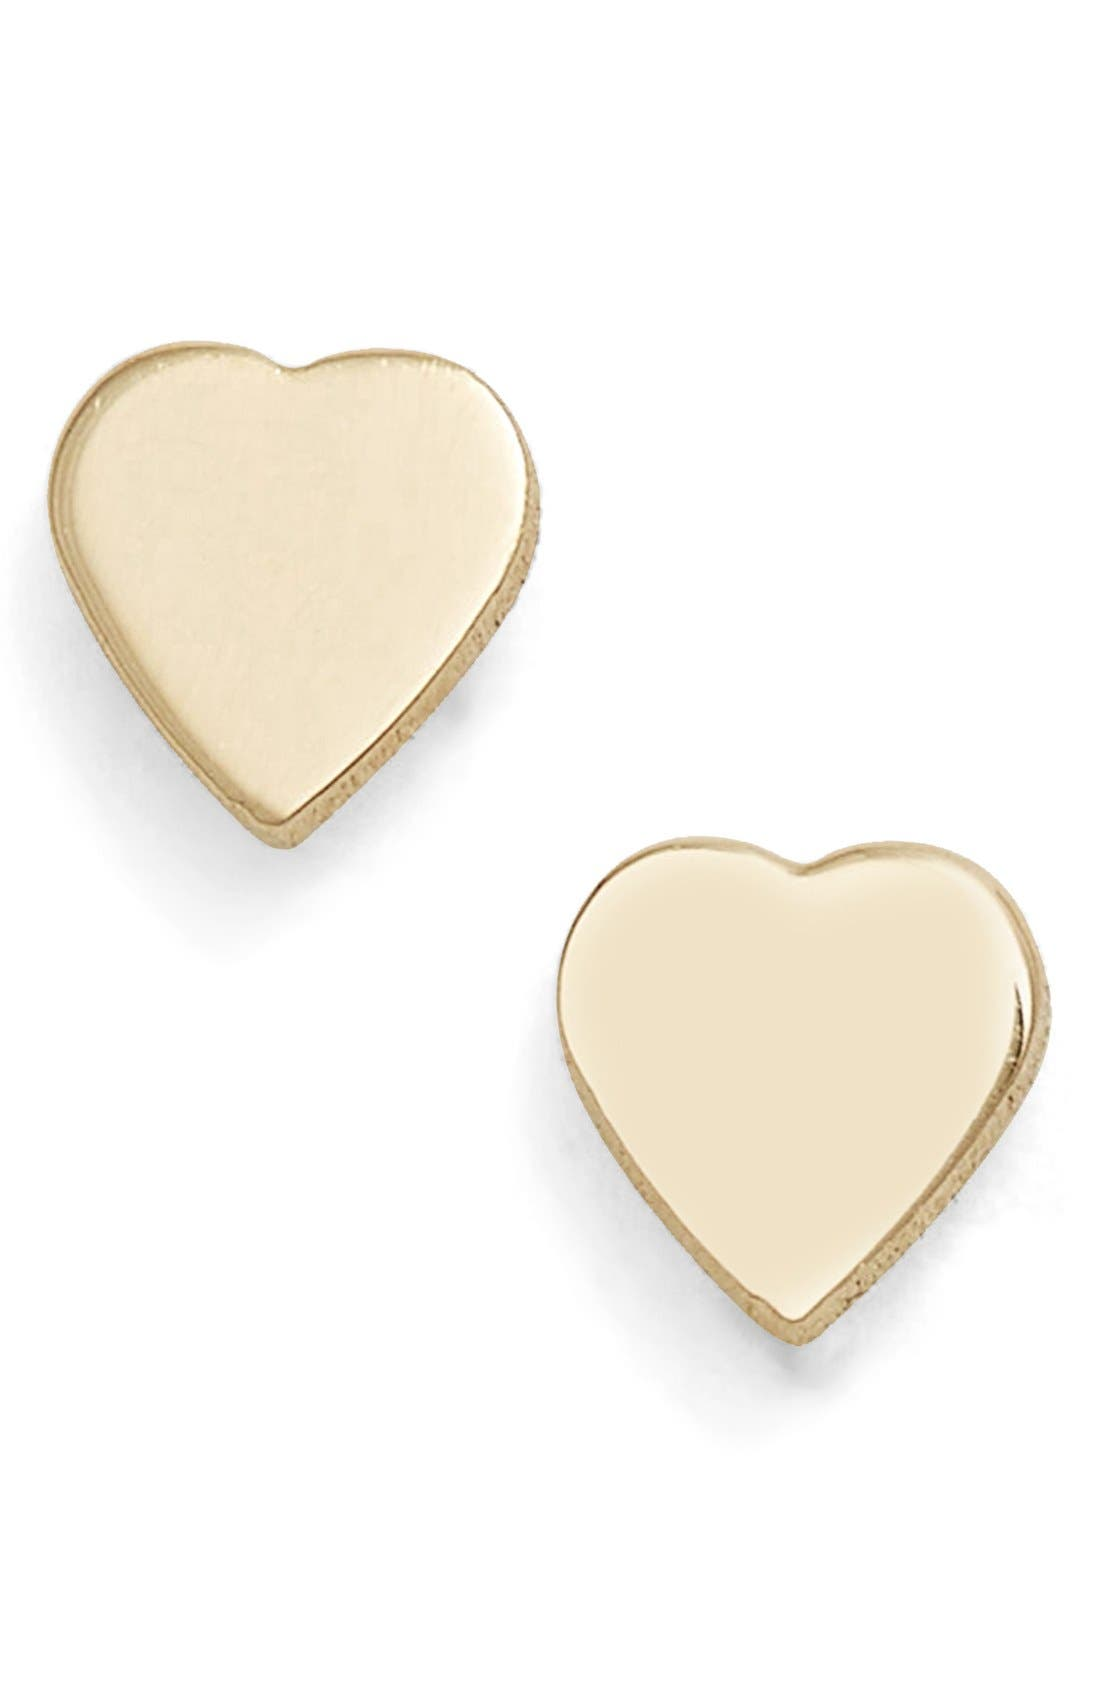 Mini Sweetheart Stud Earrings,                         Main,                         color, YELLOW GOLD